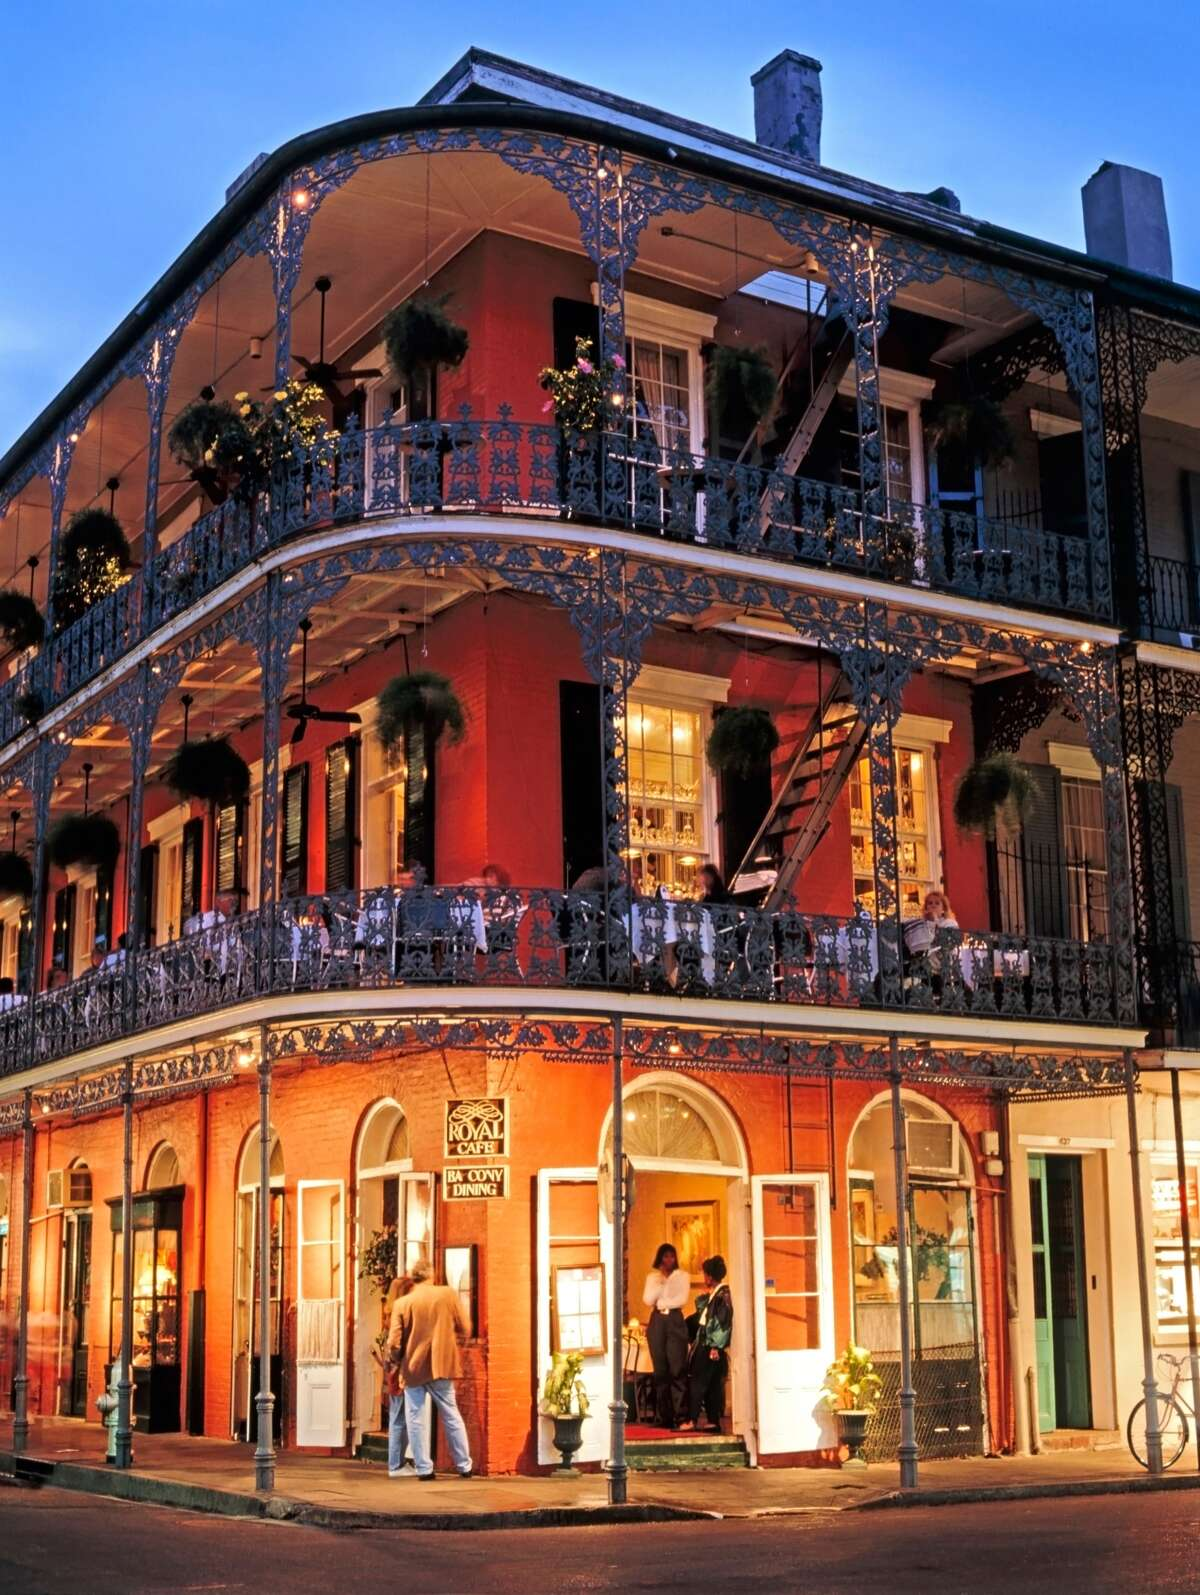 No. 3 New OrleansLast year's No. 1 city for singles still knows how to whoop it up, ranking at the top of the survey for festivals, bars, and wild weekends. But a good singles experience in NOLA need not be limited to collecting beads: some cool places to meet a more local crowd, off the tourist grid, include the Saturday night dance party at the Hi-Ho Lounge in the Marigny; Bywater wine bar Bacchanal, with its live-music-filled courtyard; or Fulton Alley for late-night